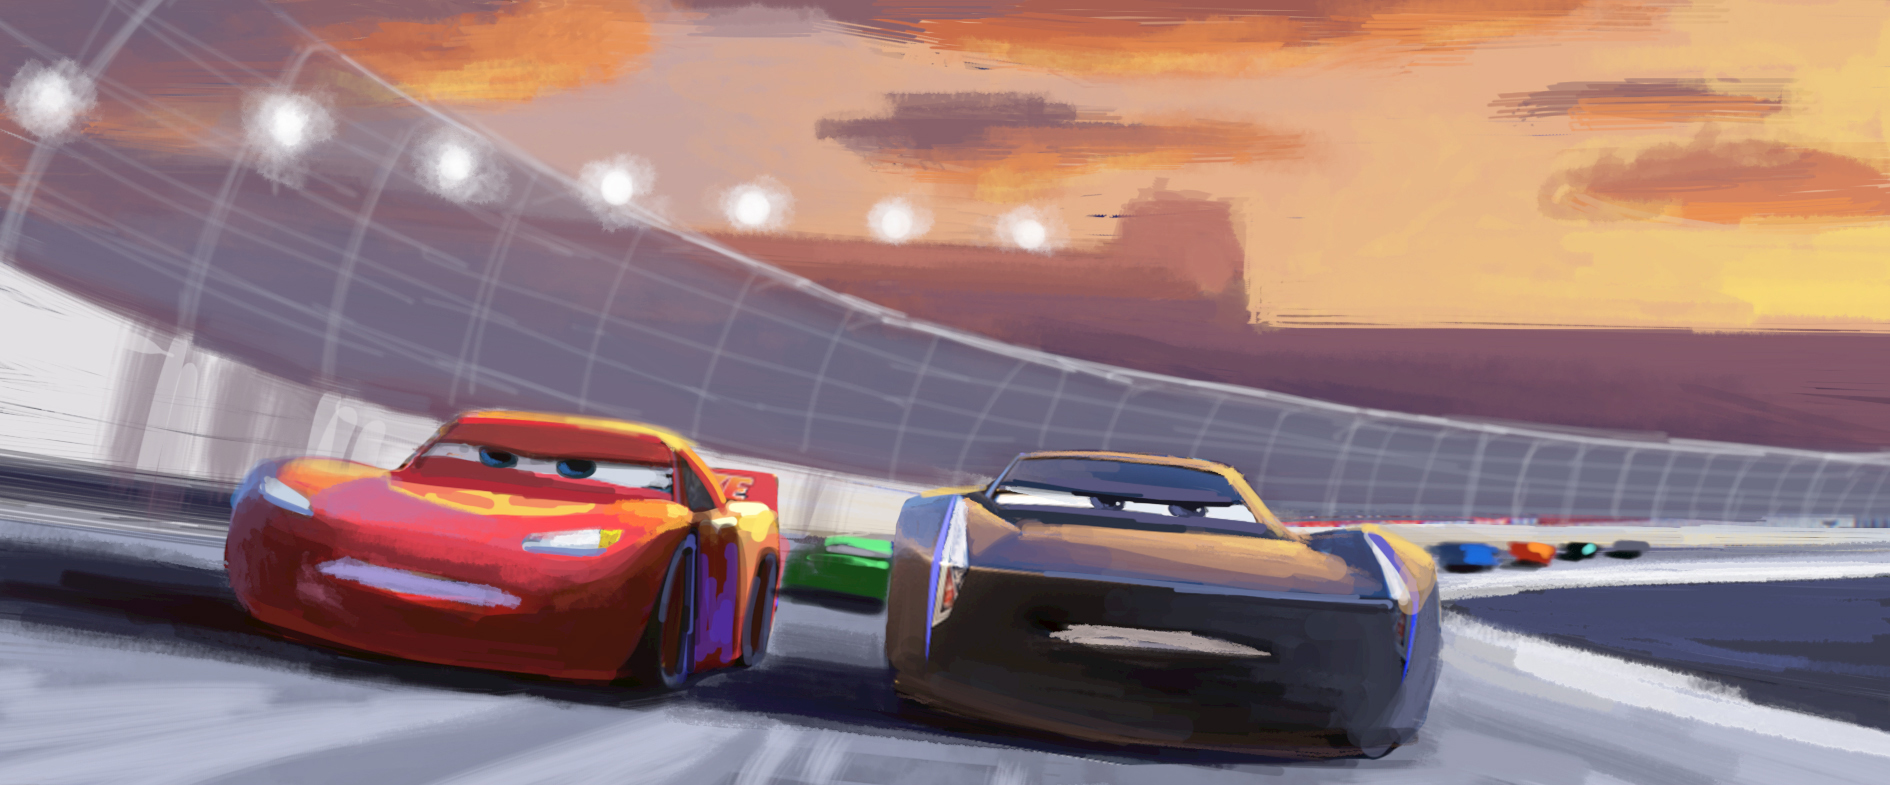 See Cars 3 Scene Evolution From Storyboard To Final Cut